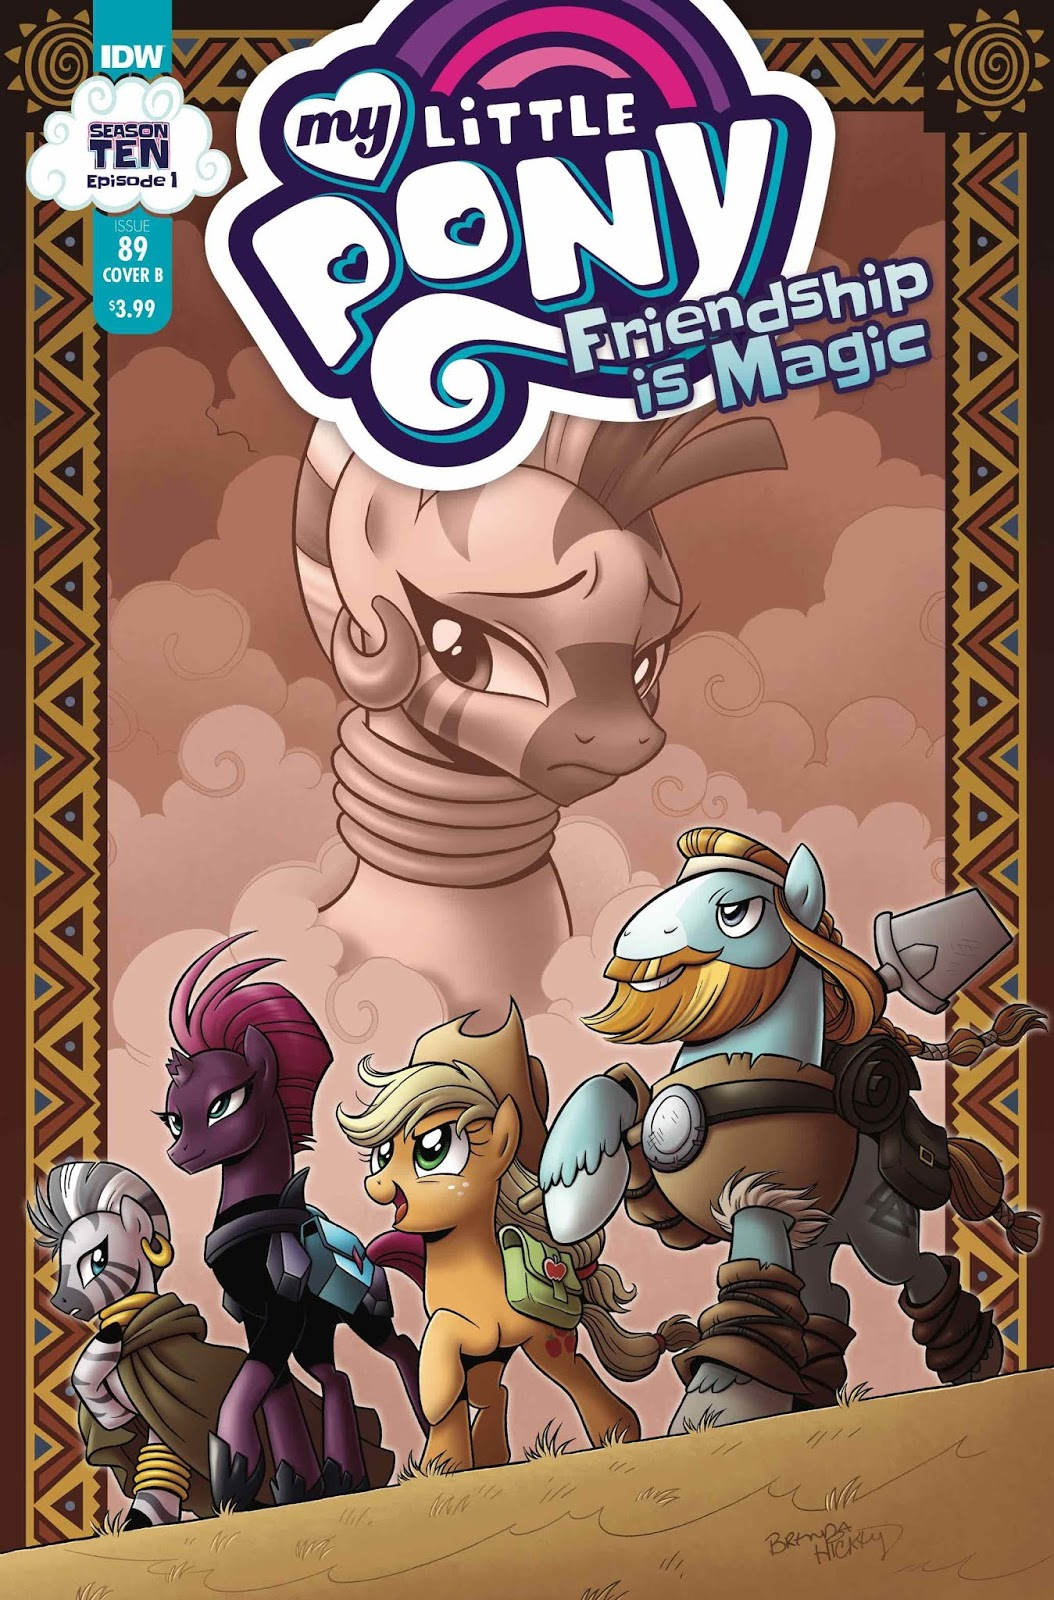 Equestria Daily Mlp Stuff Season 10 Comic My Little Pony Friendship Is Magic 89 Revealed Writer Synopsis And Artist